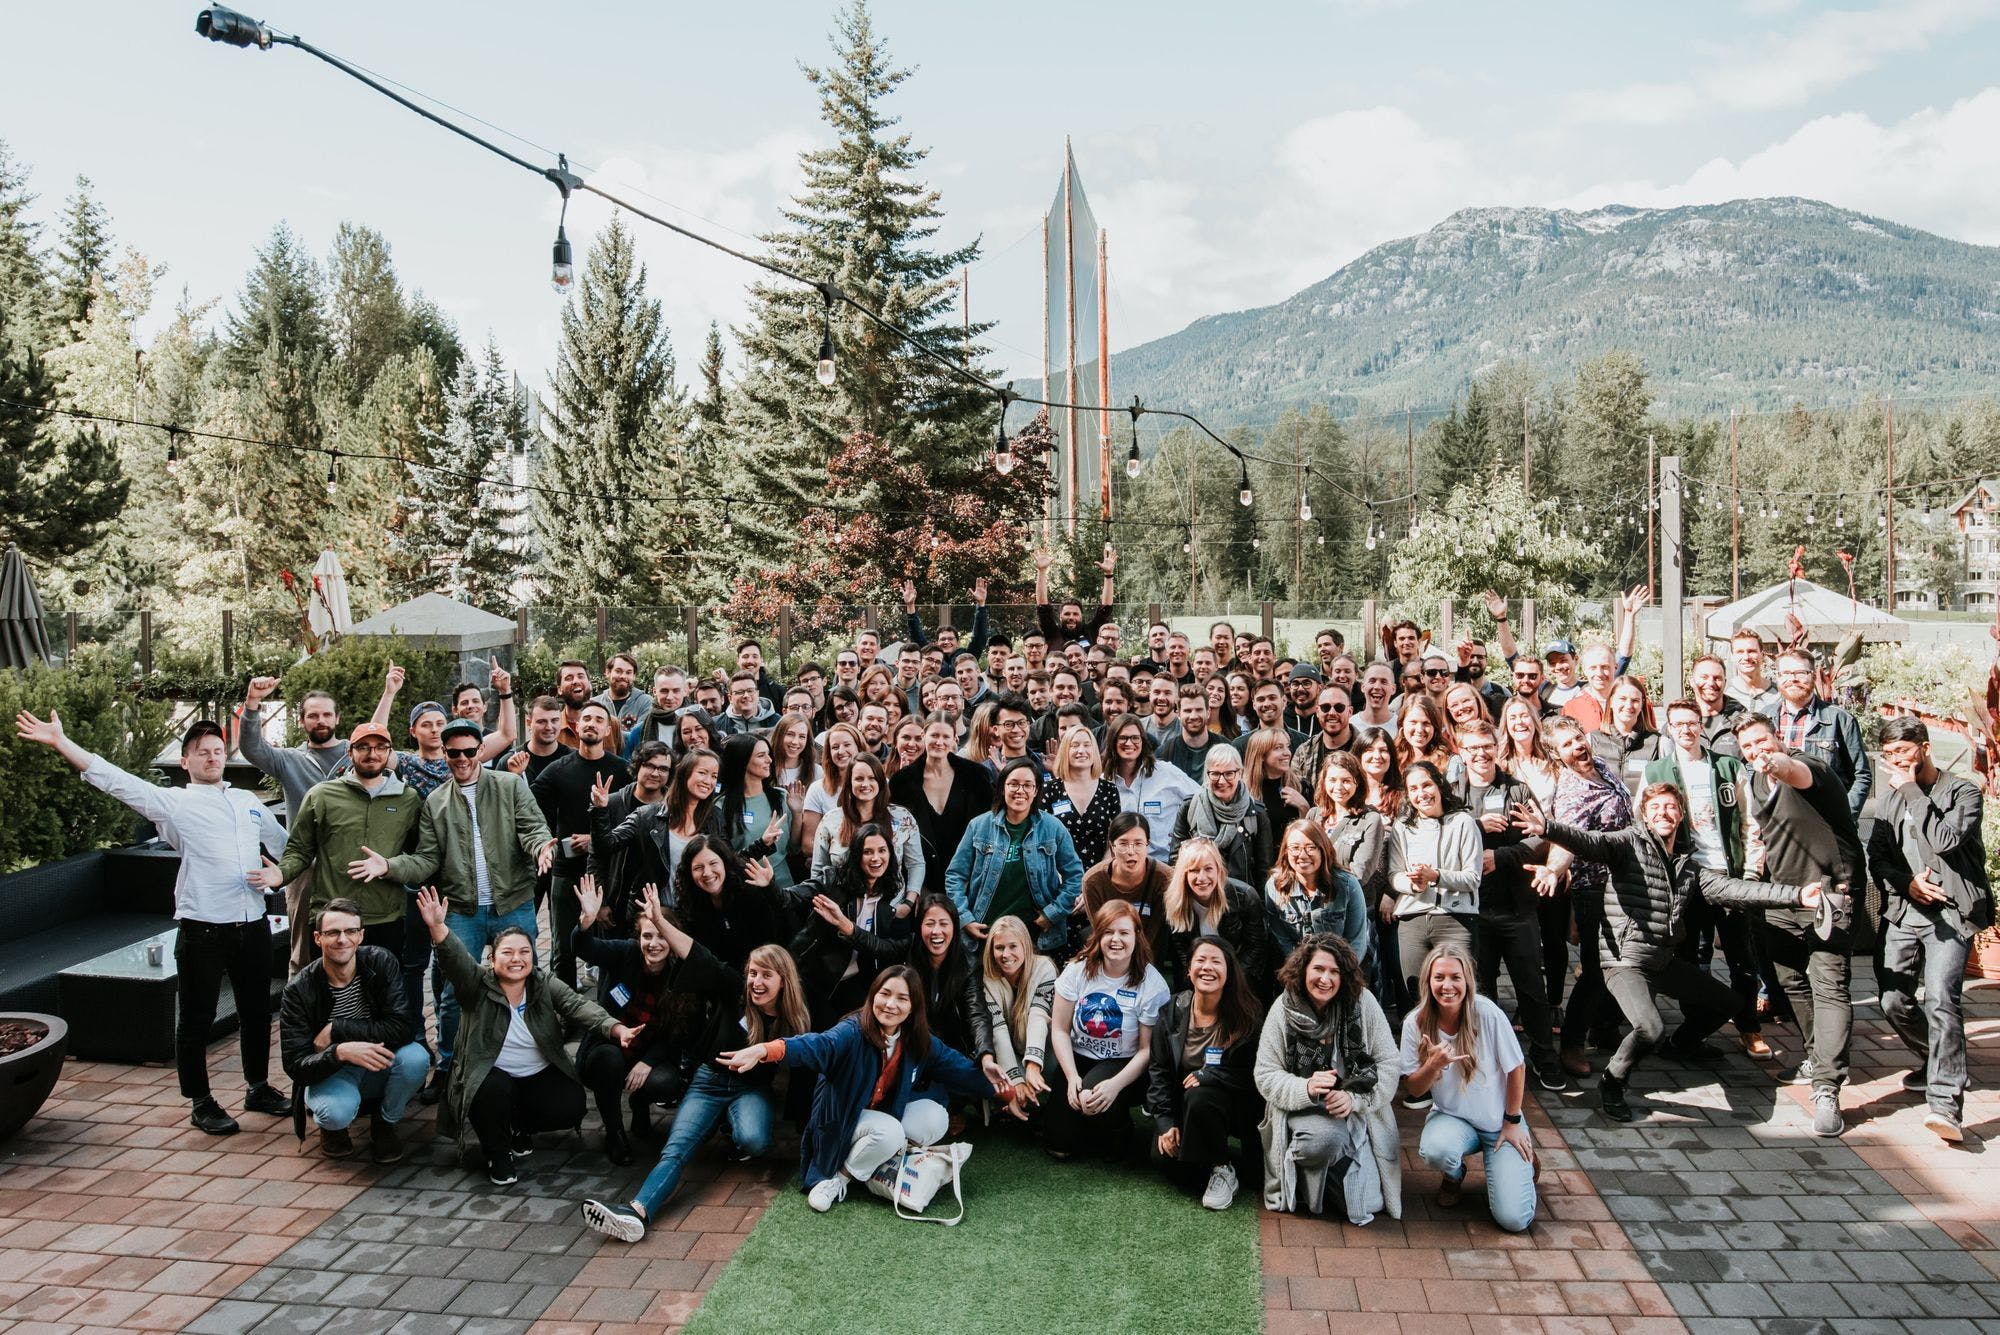 The MetaLab team at their 2019 company offsite